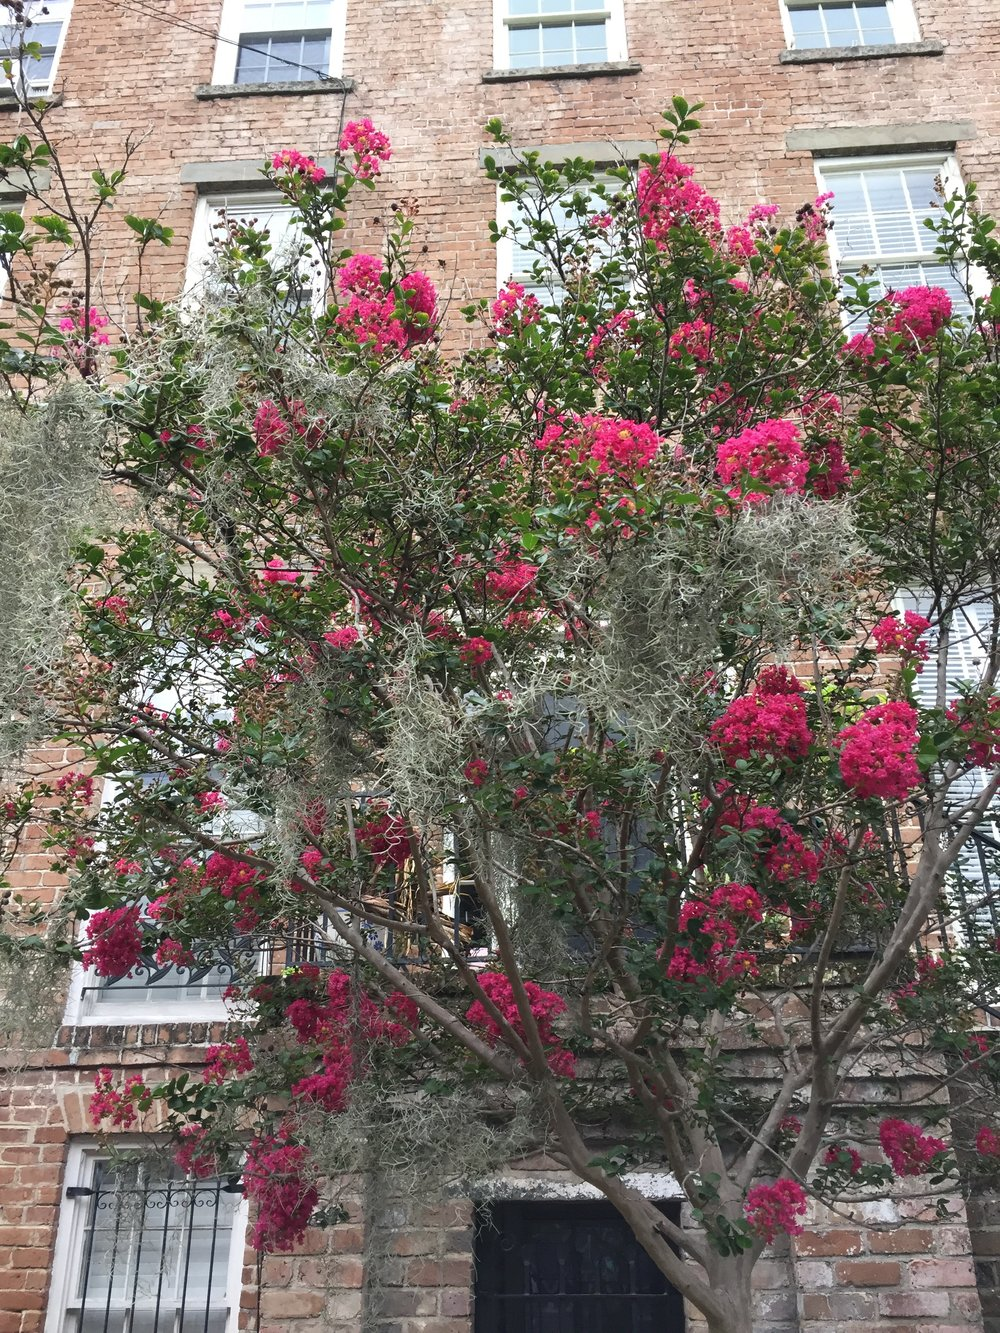 A tall crepe myrtle draped with Spanish moss.